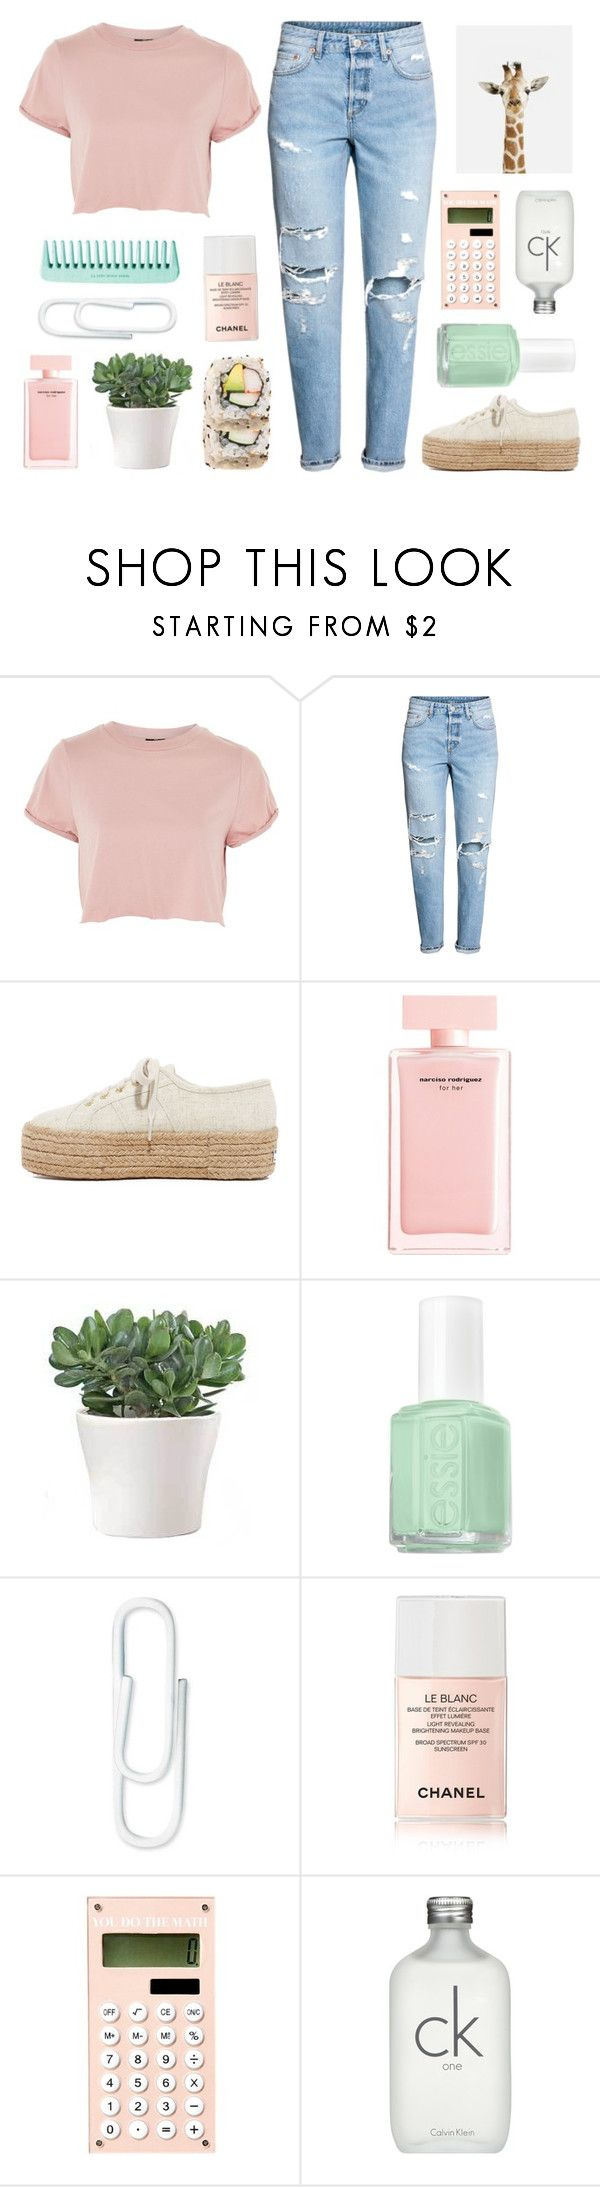 """""""rose"""" by sofhiree20 ❤ liked on Polyvore featuring Topshop, H&M, Superga, Narciso Rodriguez, Essie, Chanel and Calvin Klein"""